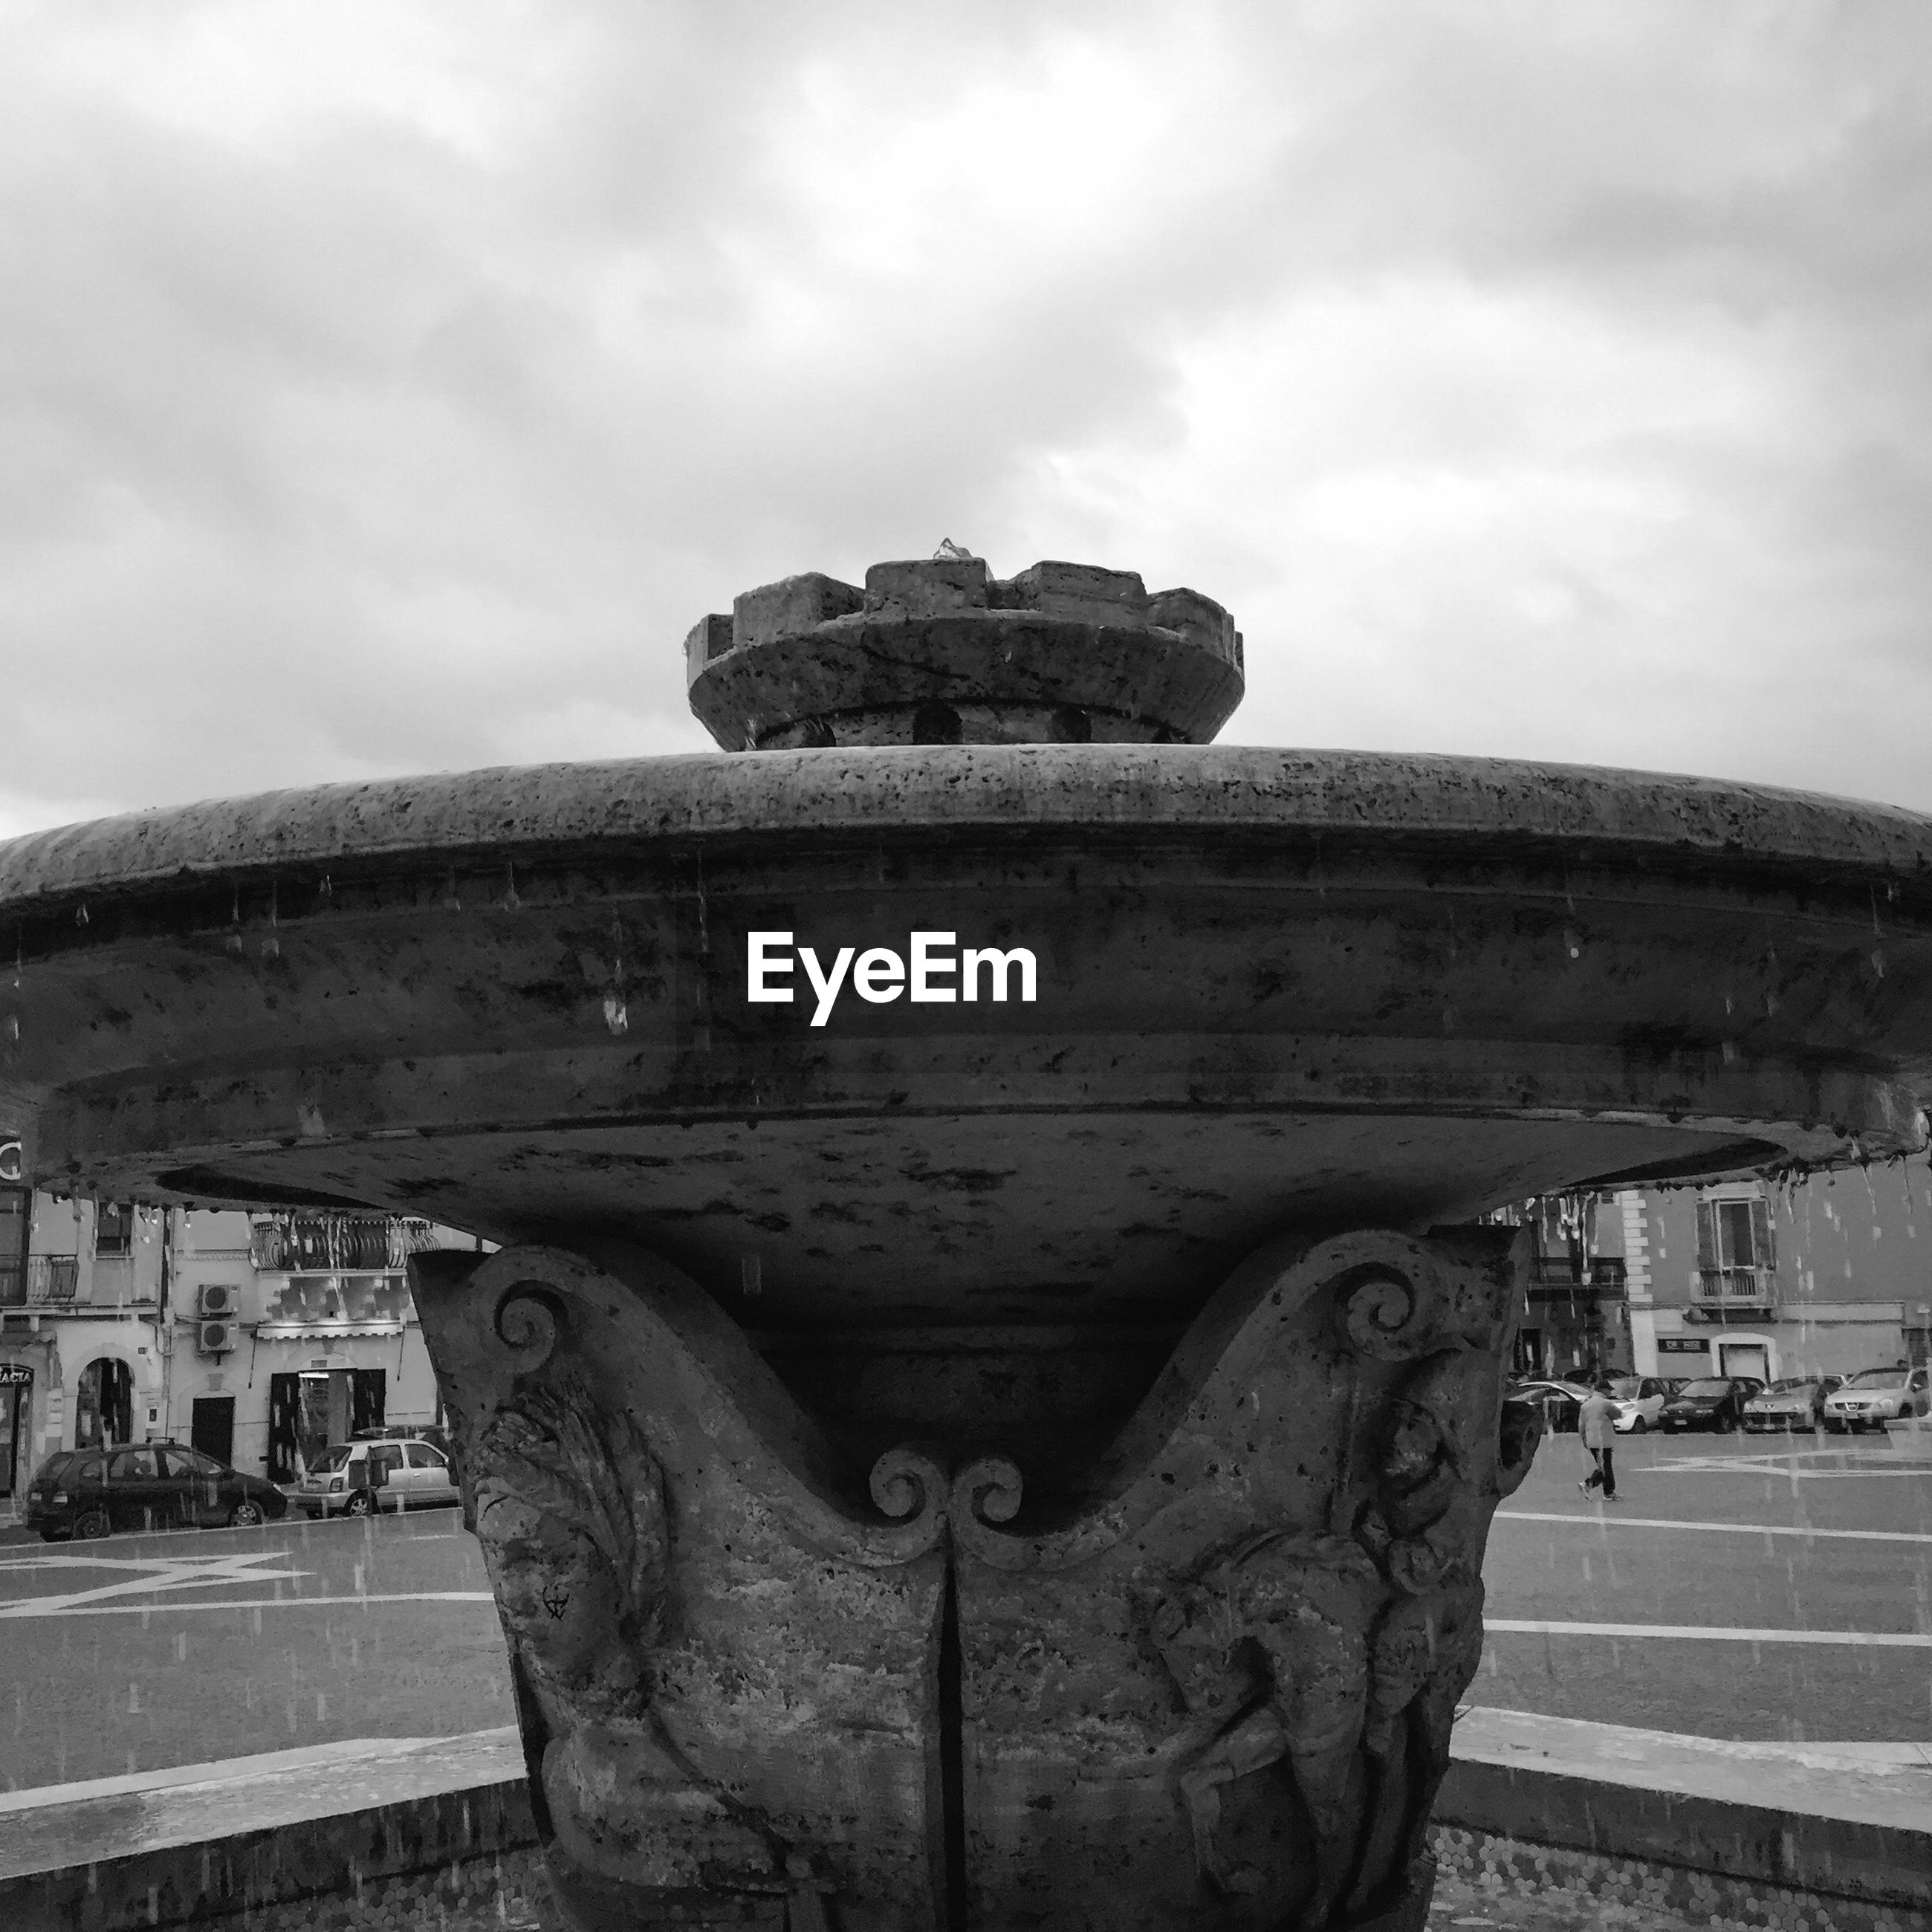 Fountain at town square